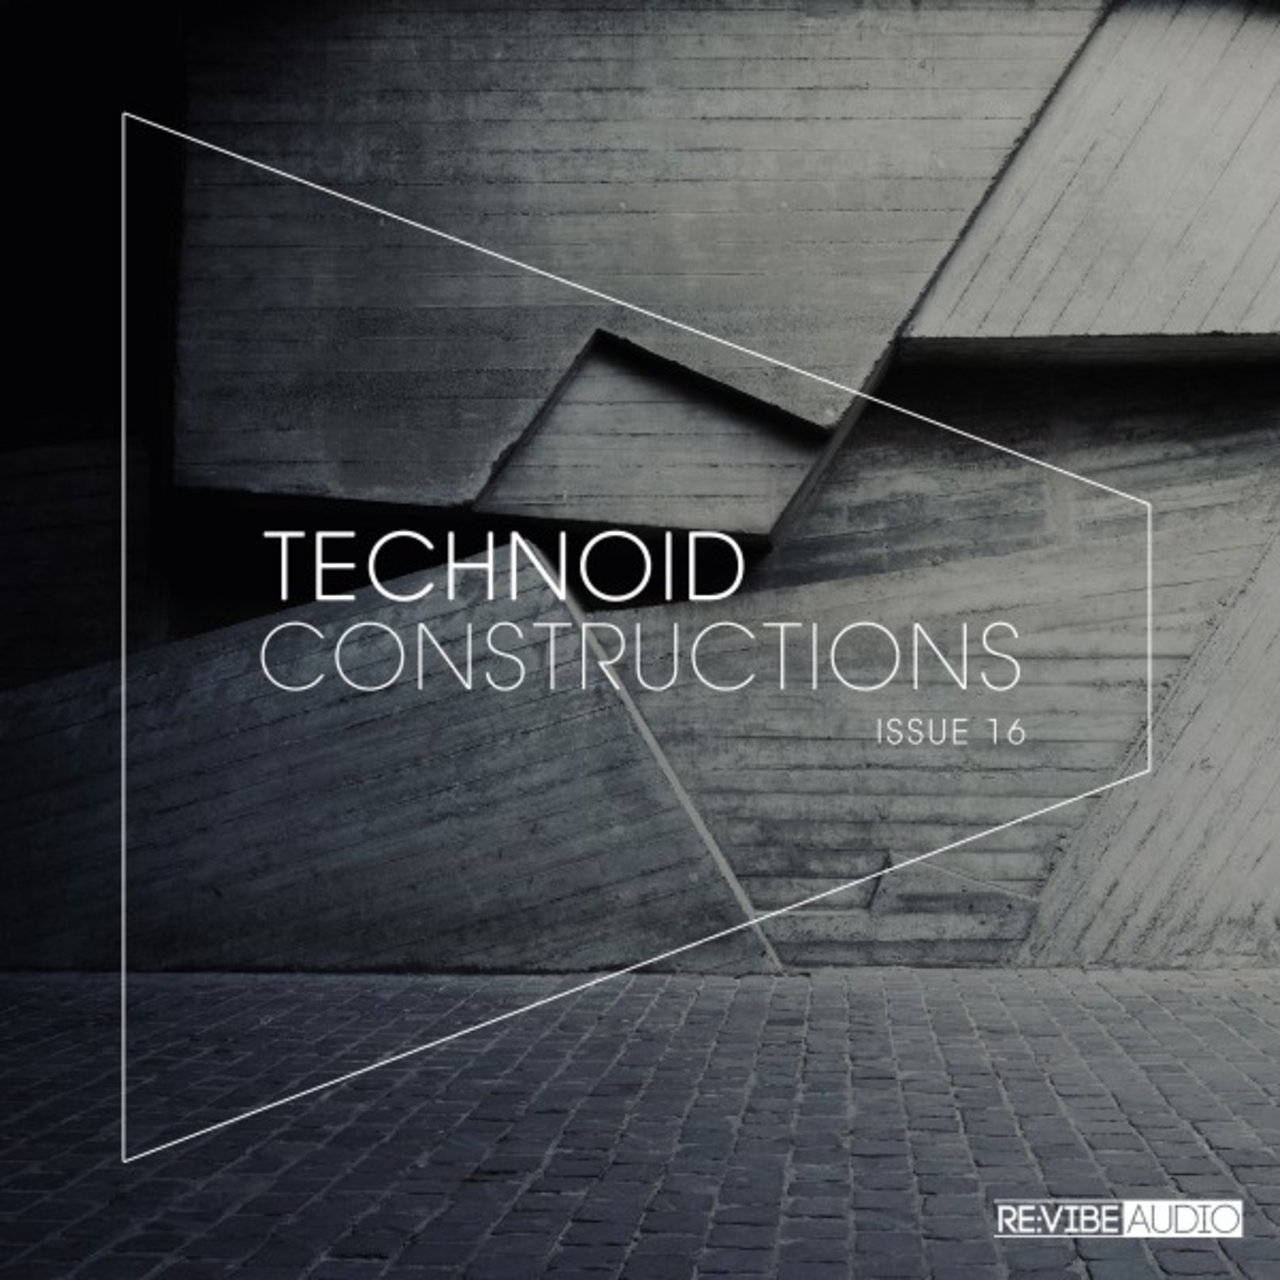 Technoid Constructions #16